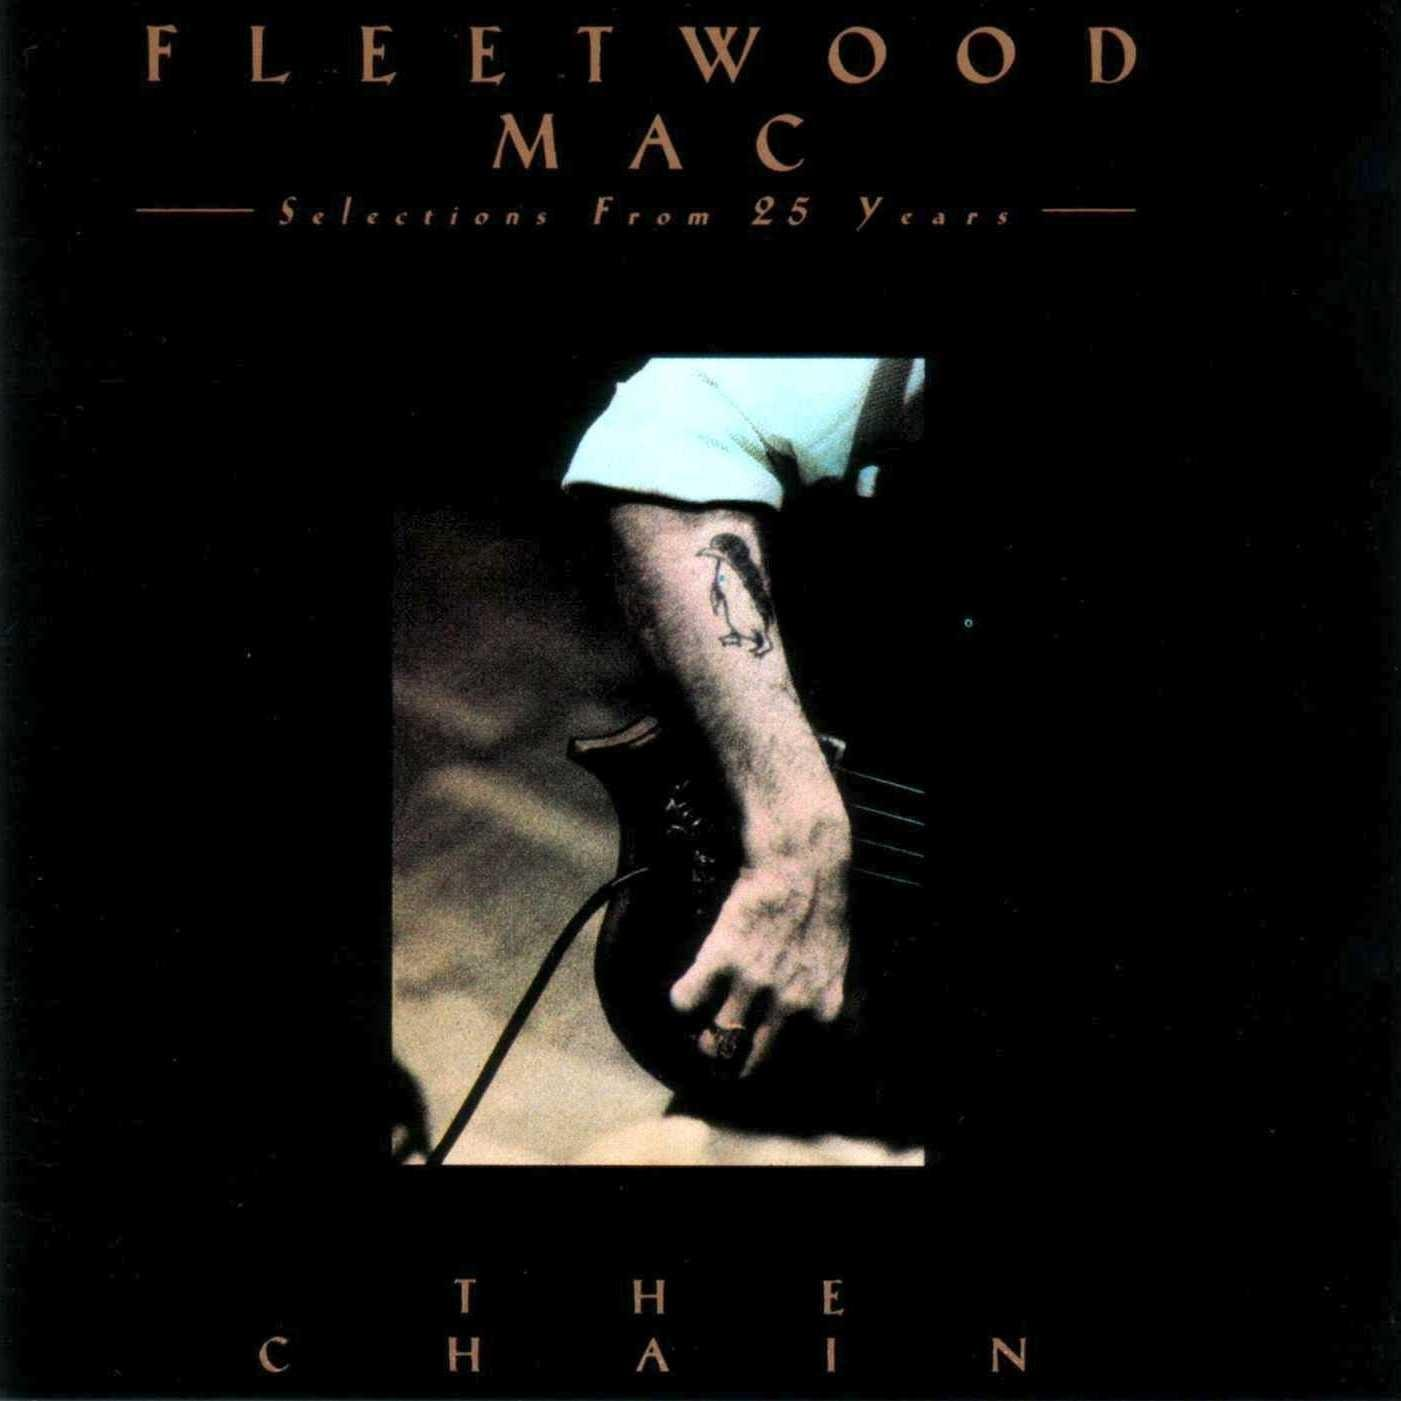 Letra de canción de The Chain de Fleetwood Mac lyrics